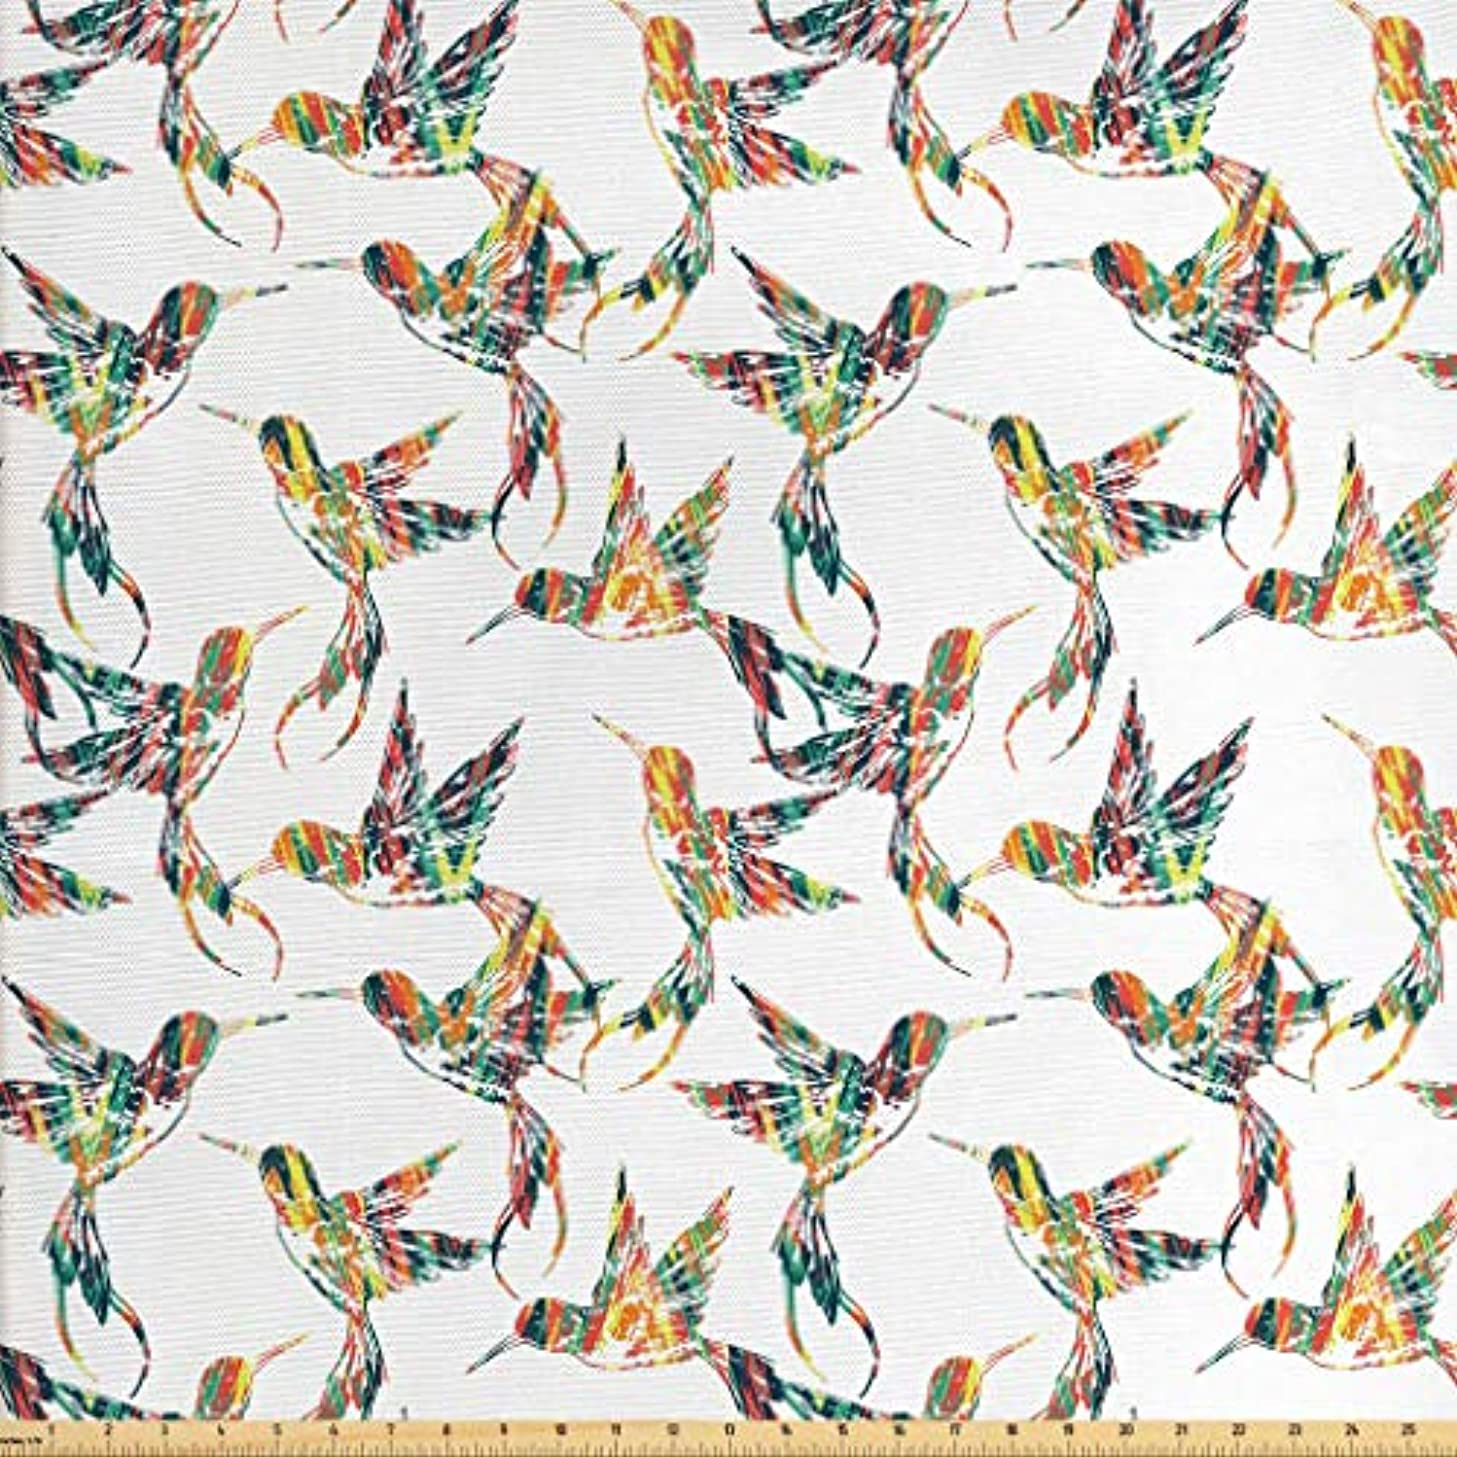 Lunarable Hummingbirds Fabric by The Yard, Grungy Looking Colorful Bird Figures Hawaiian Exotic Fauna Aloha Fun Pattern, Decorative Fabric for Upholstery and Home Accents, 2 Yards, Multicolor